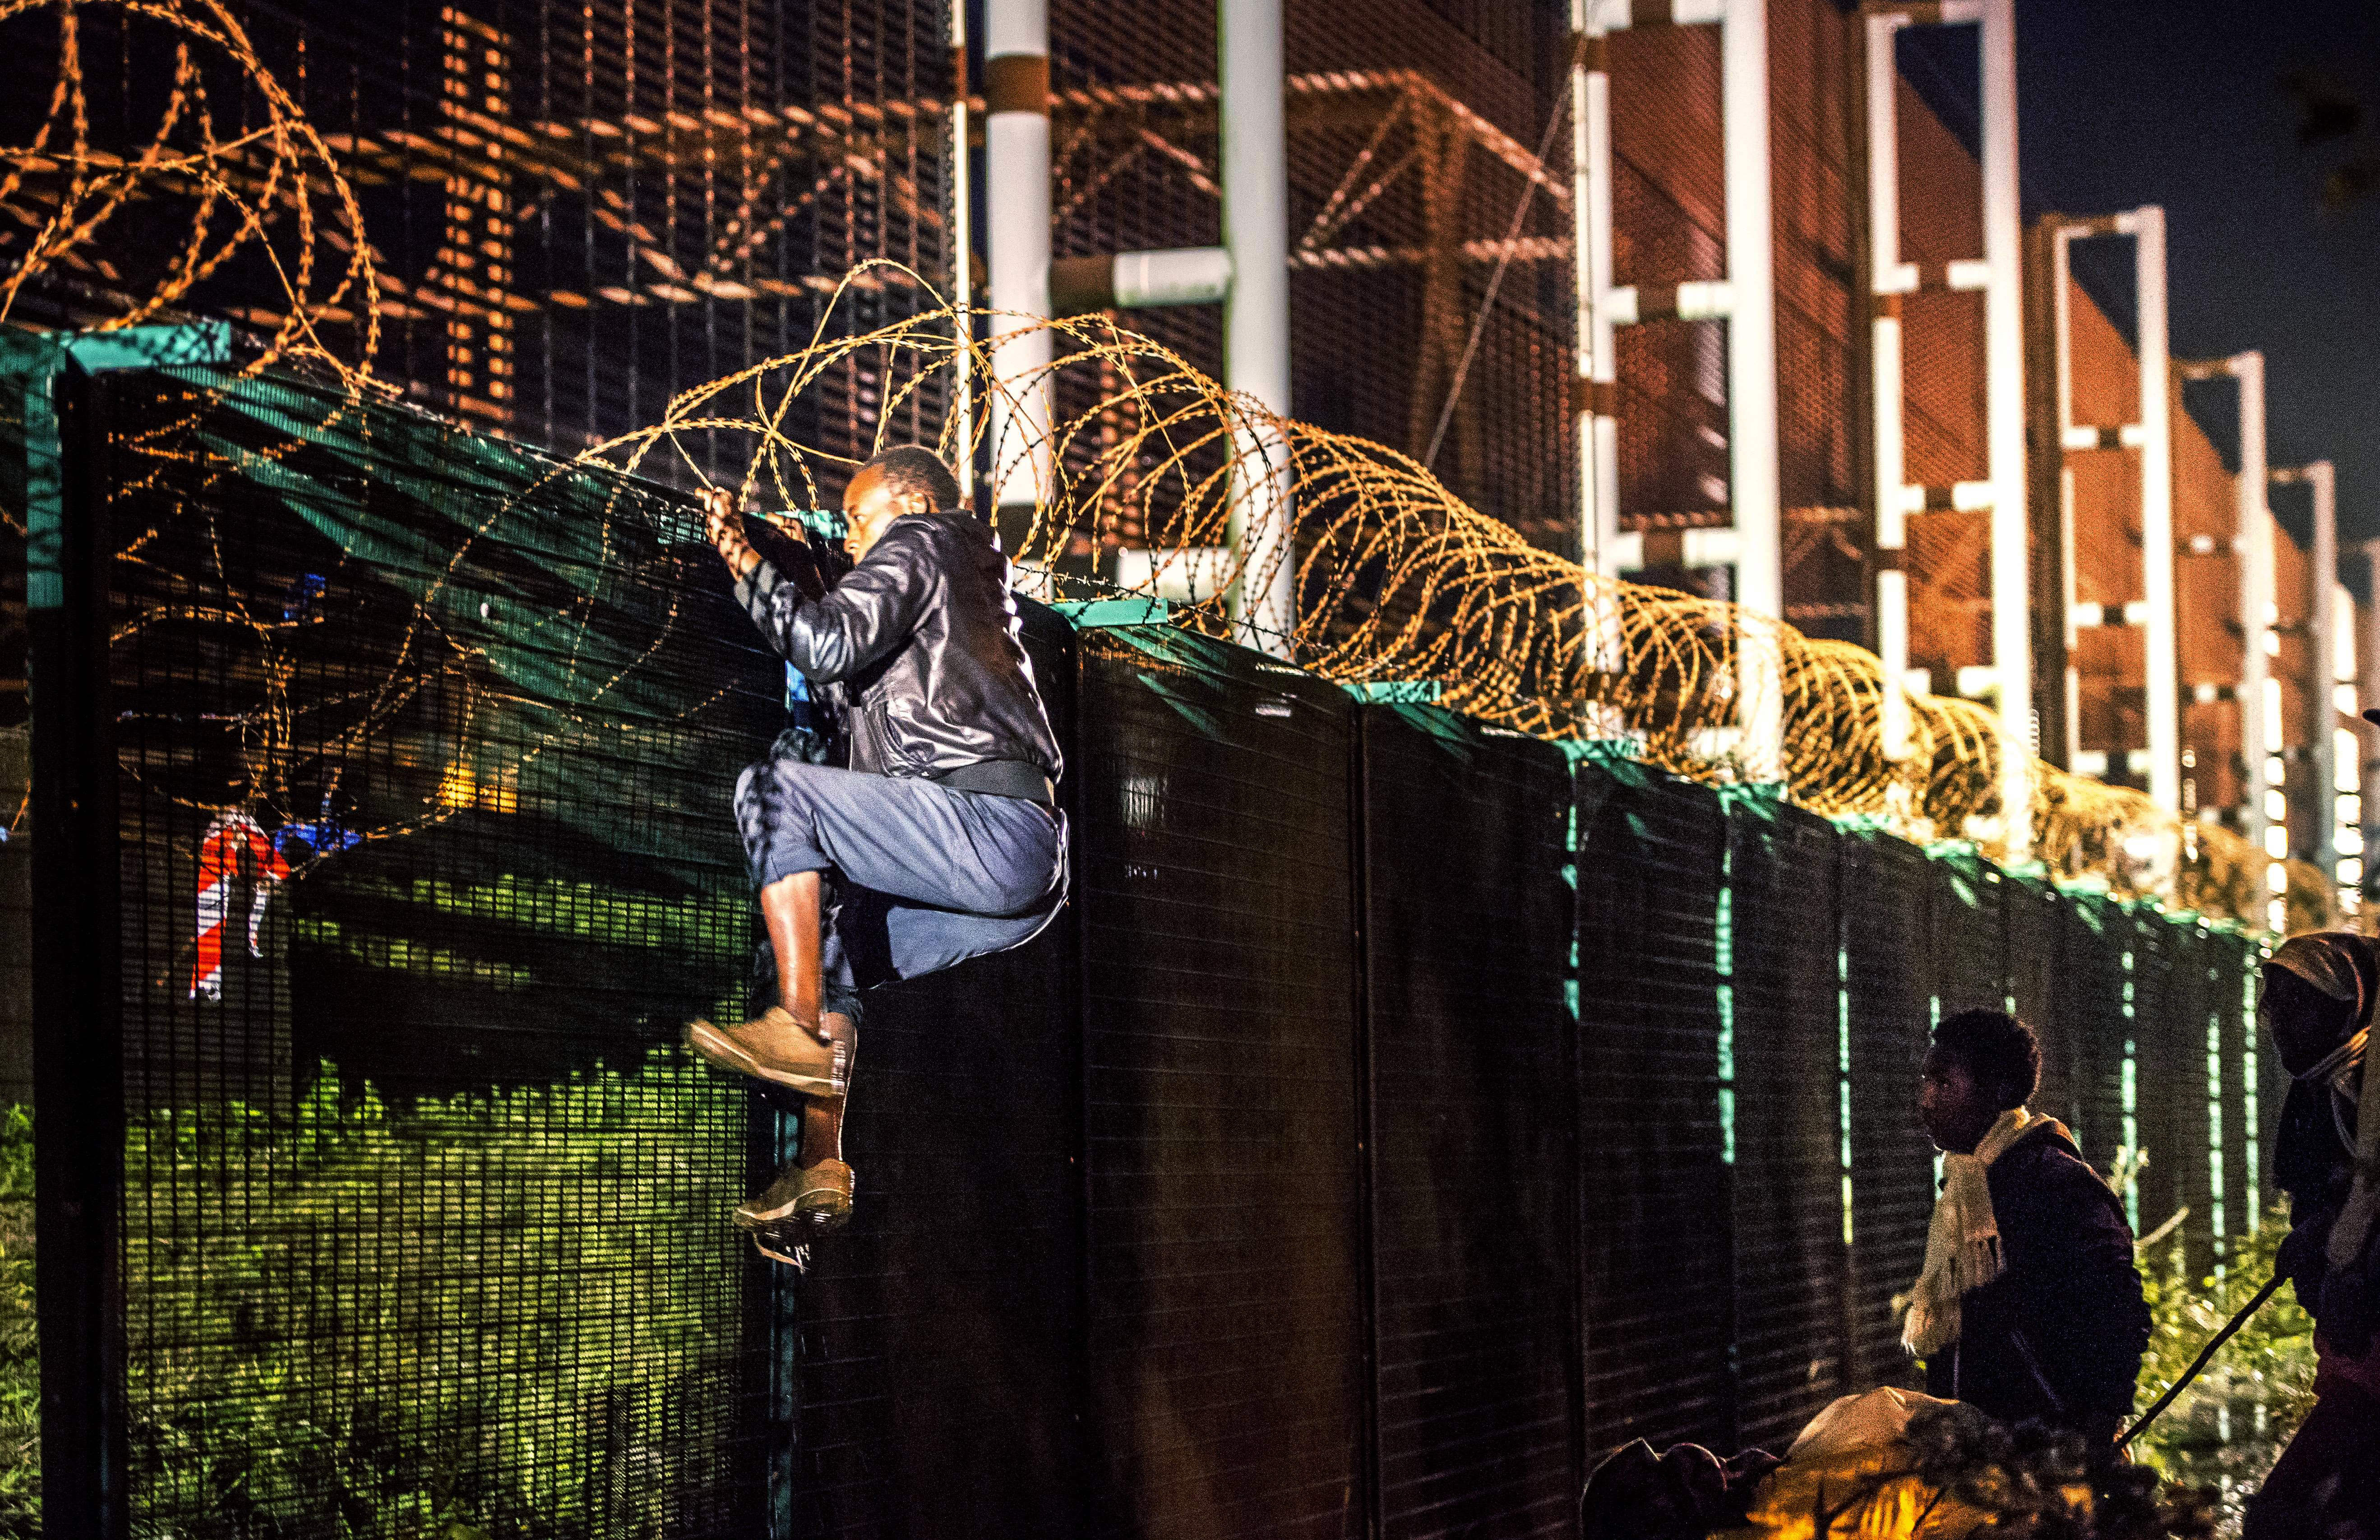 Migrants In Calais France And Britian Struggle With